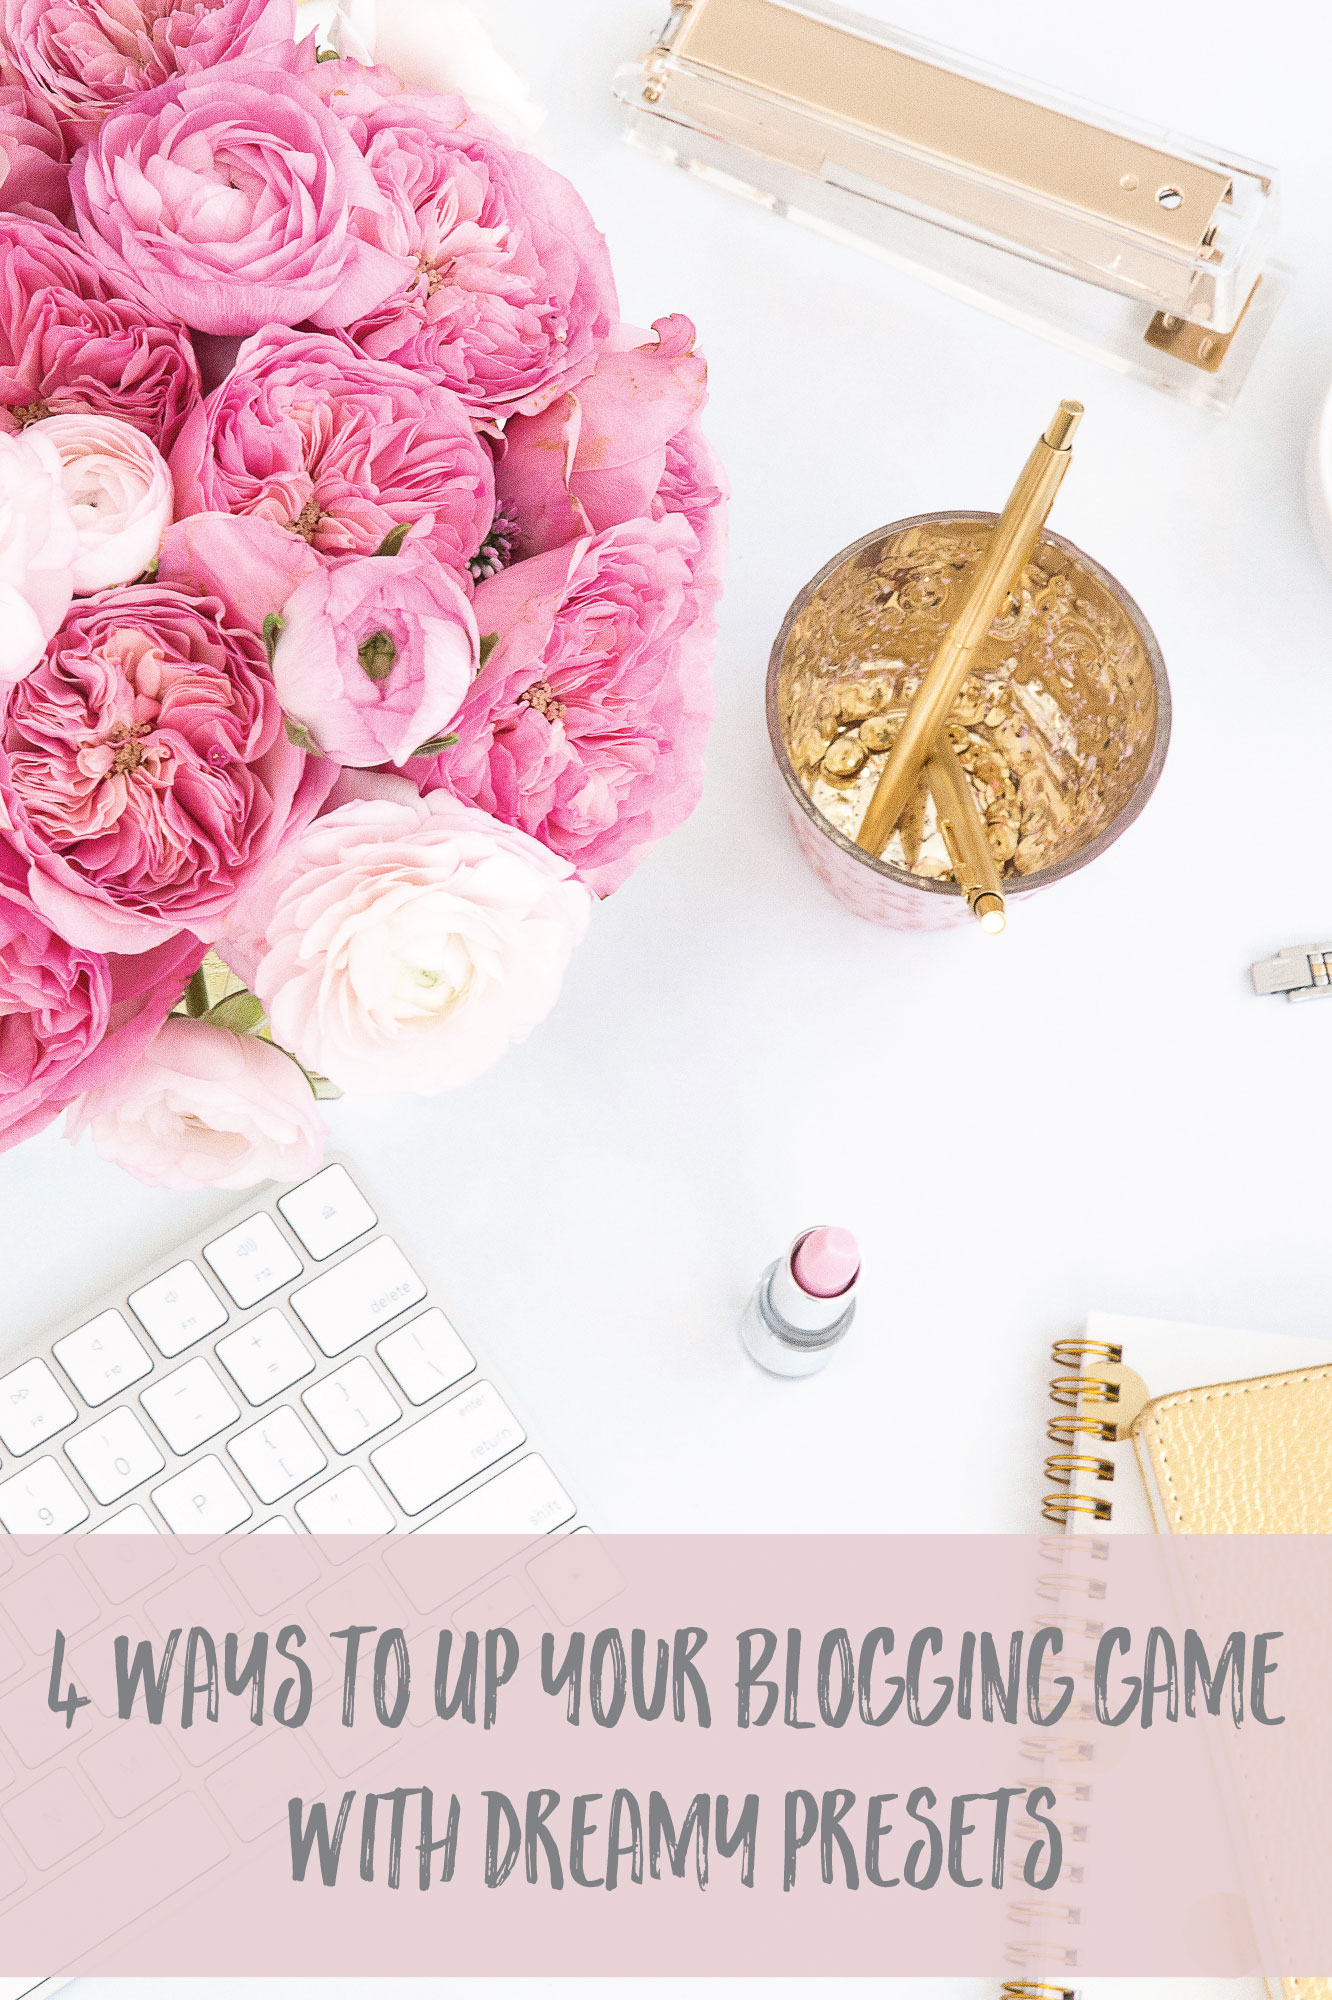 4 Ways To Up Your Blogging Game With Dreamy Presets